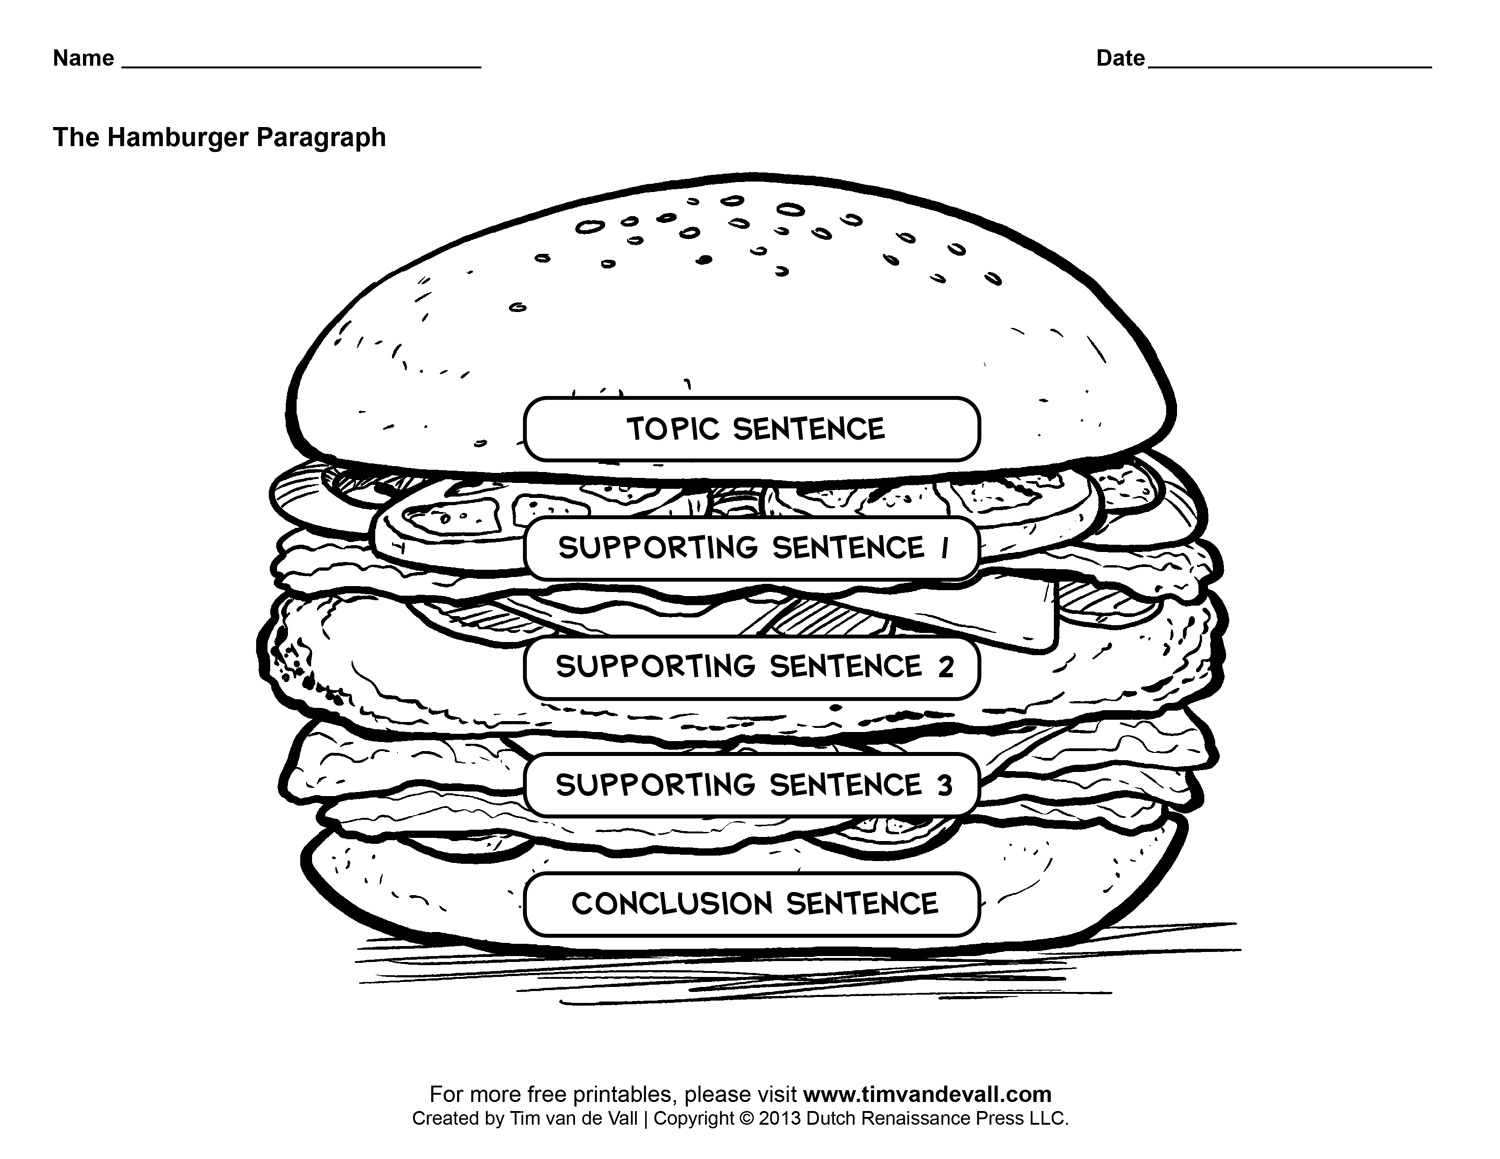 18 Best Images of Hamburger Paragraph Worksheet